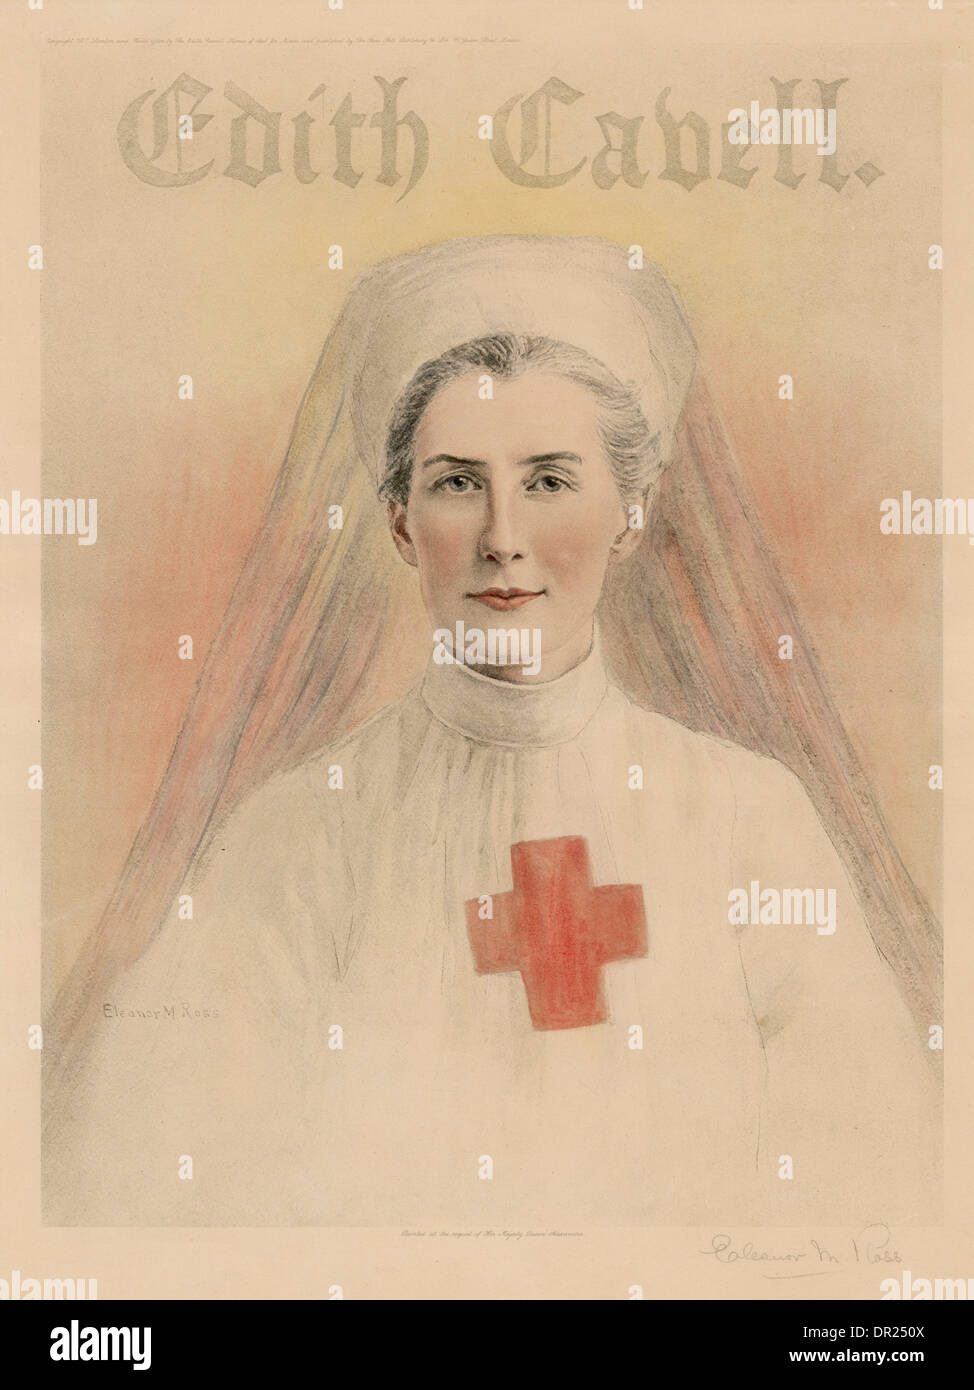 EDITH CAVELL - Stock Image